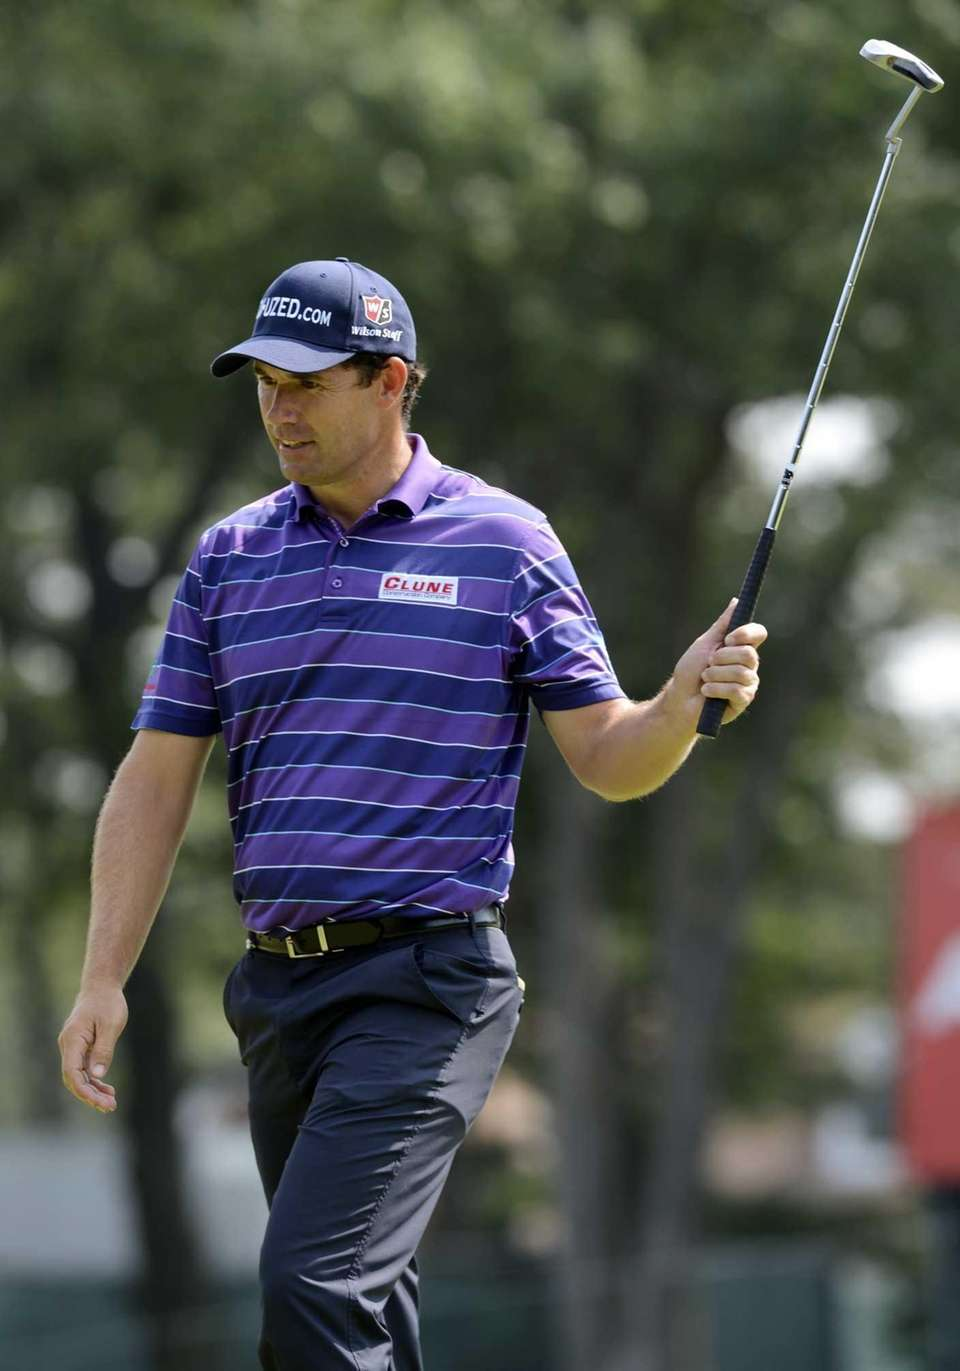 Padraig Harrington of Ireland, raises his putter after